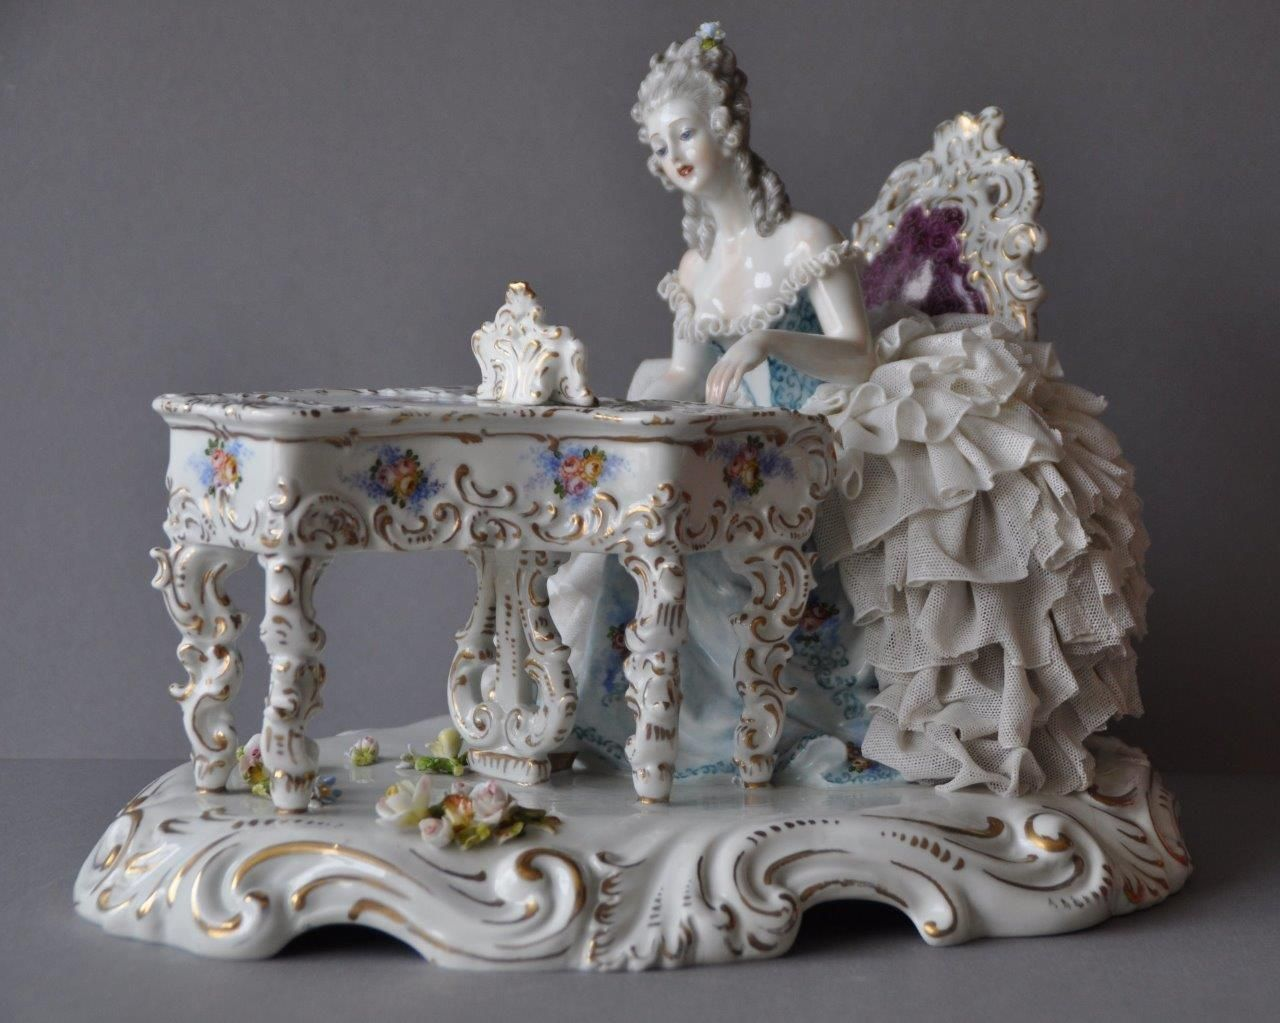 Large Porcelain Dresden Lace Figural Music Pianist Figurine Capodimonte Group . | eBay